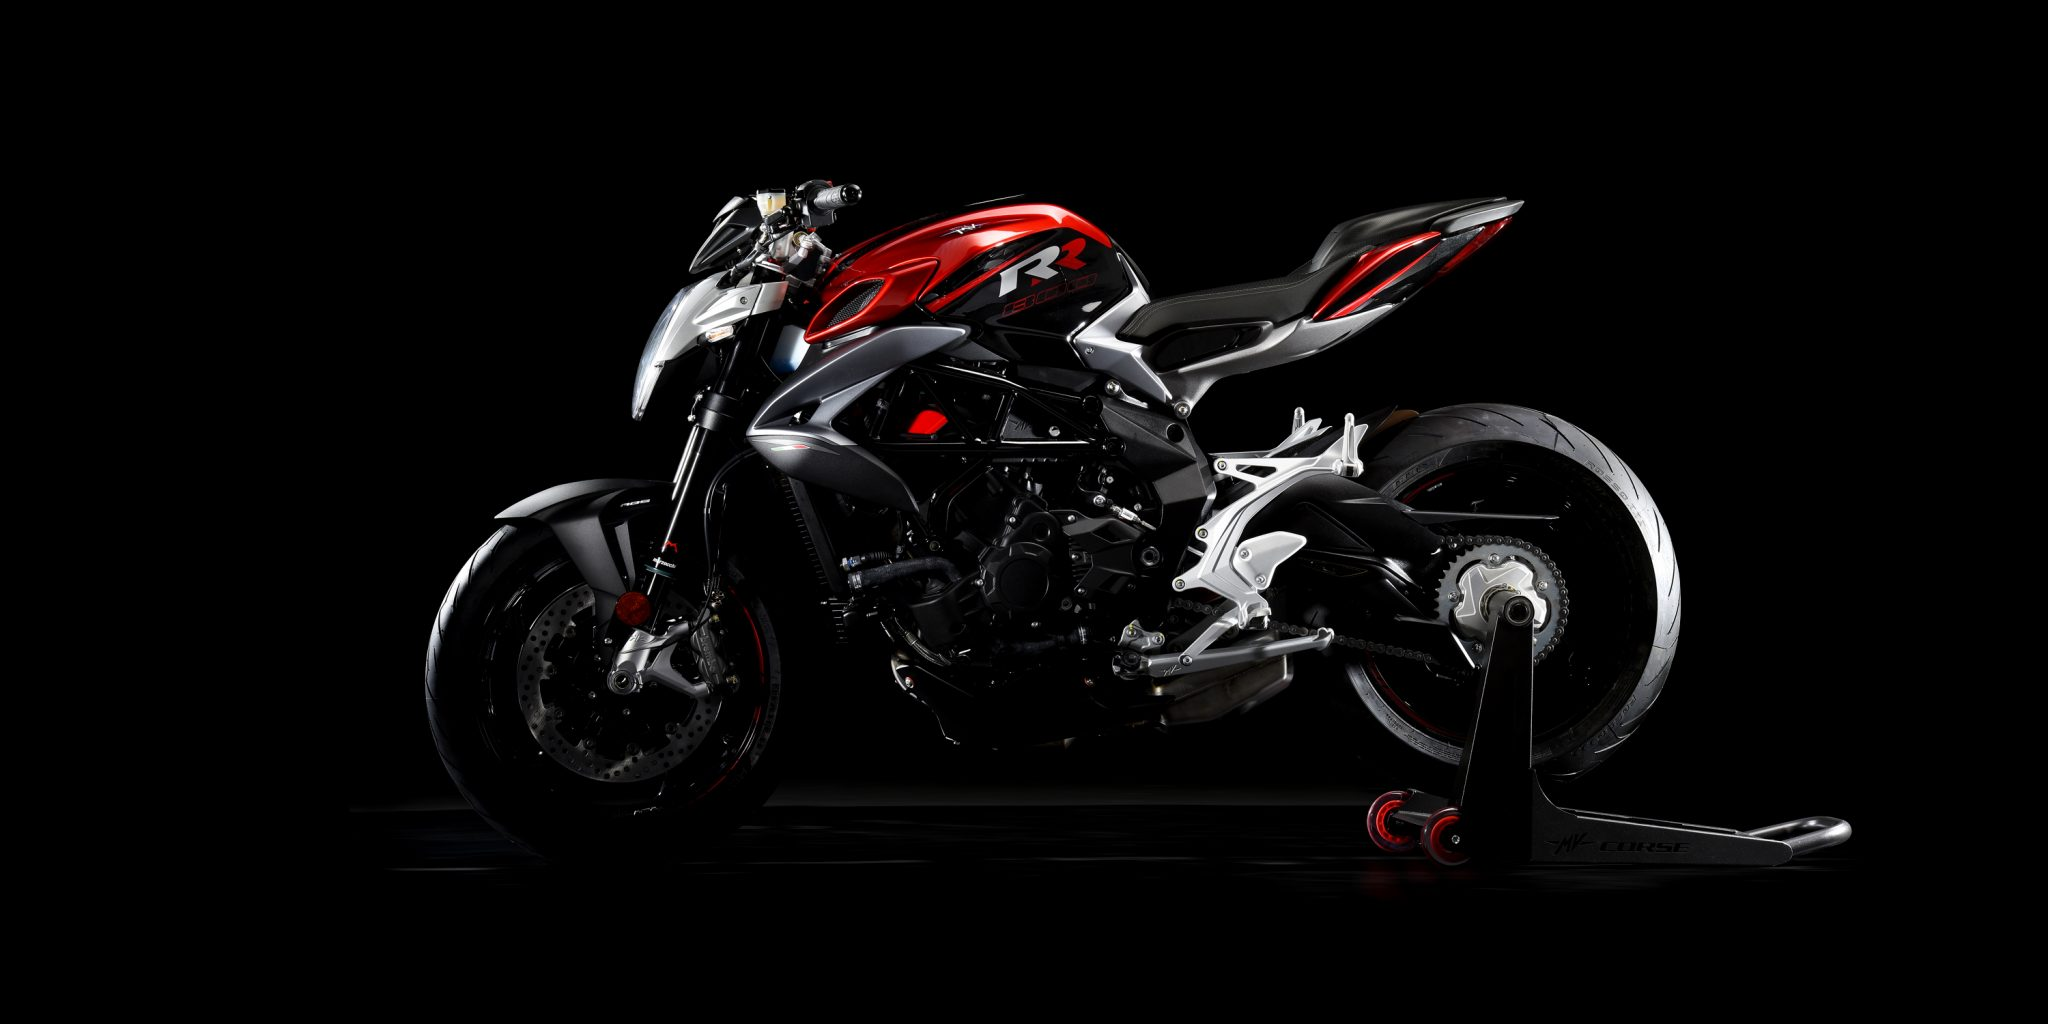 MV Agusta and Pirelli unveil limited edition Brutale 800 RR